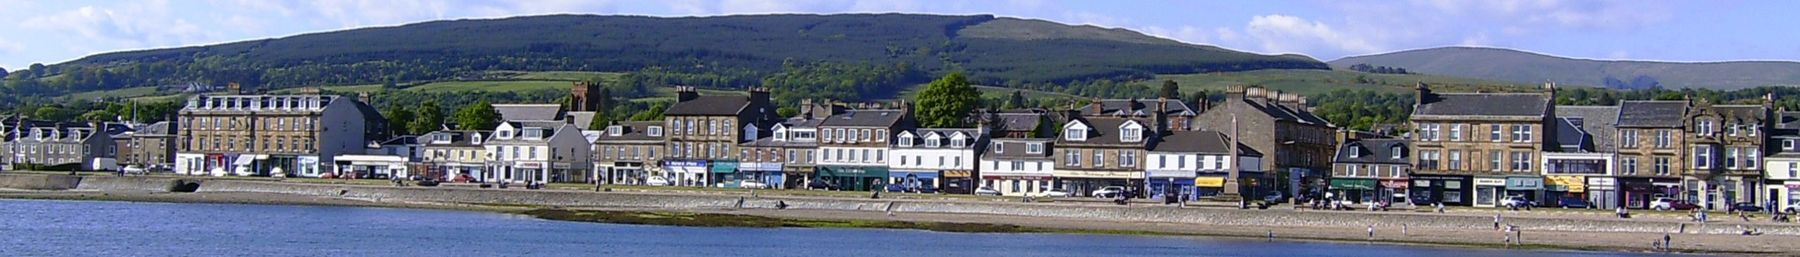 Helensburgh (Scotland) banner View from the Pier.jpg